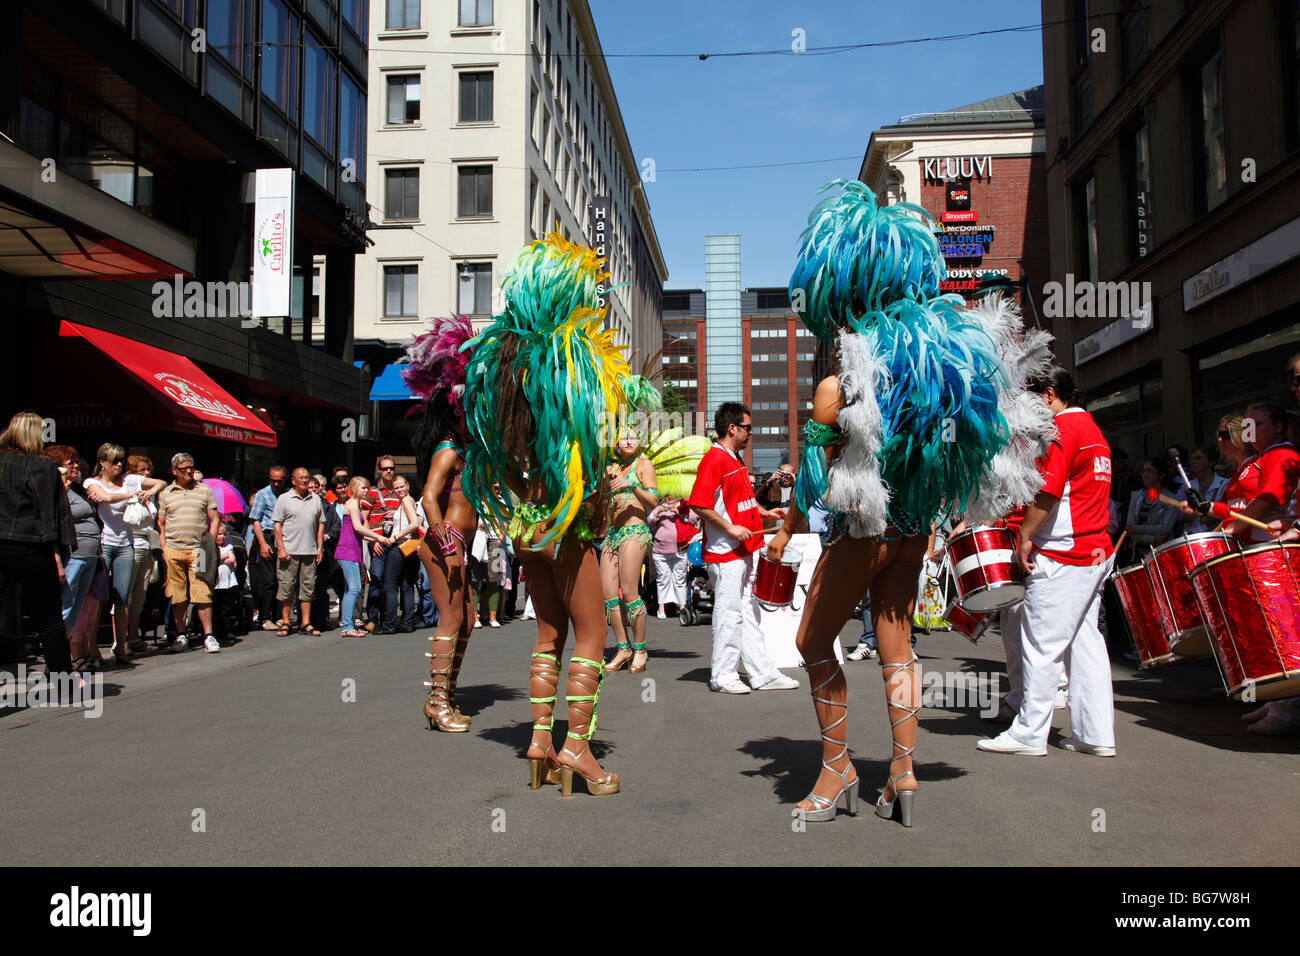 Finland, Helsinki, Helsingfors, Street Dancers, Women Performers Wearing Colourful Costumes, Rear View - Stock Image